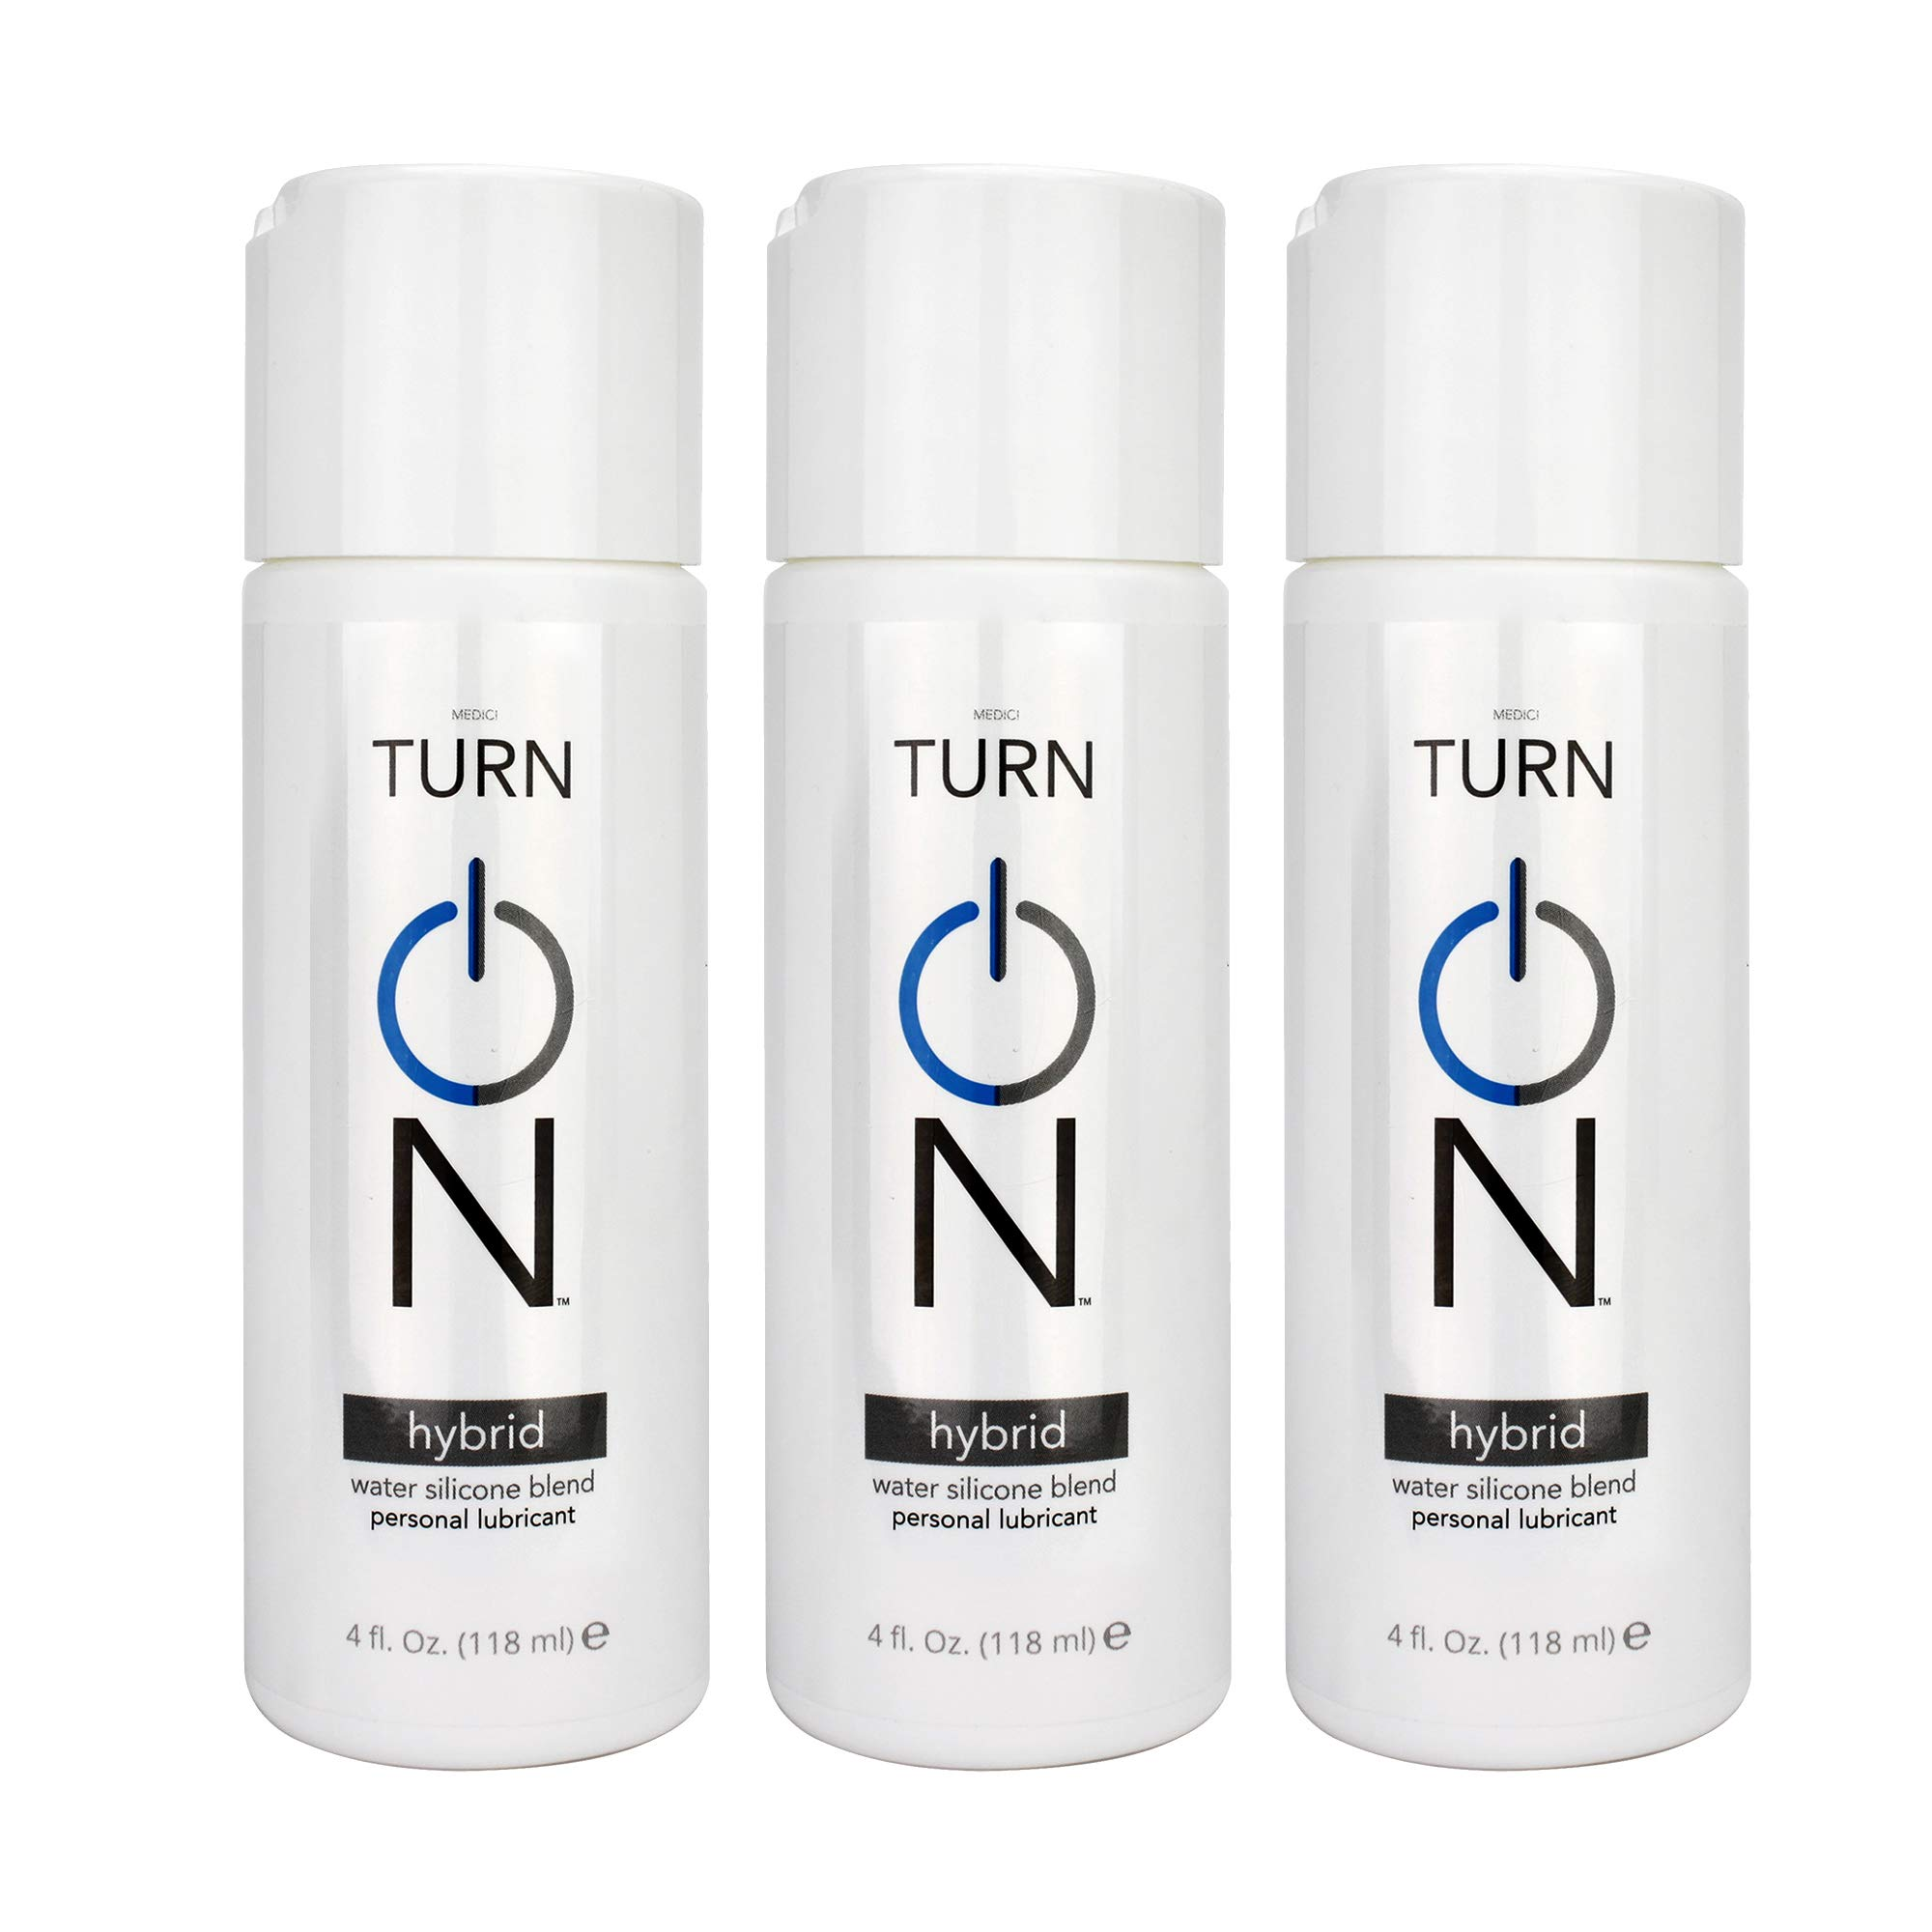 Turn On Water Silicone Blend Hybrid Personal Lubricant, 4 oz (3 Pack)